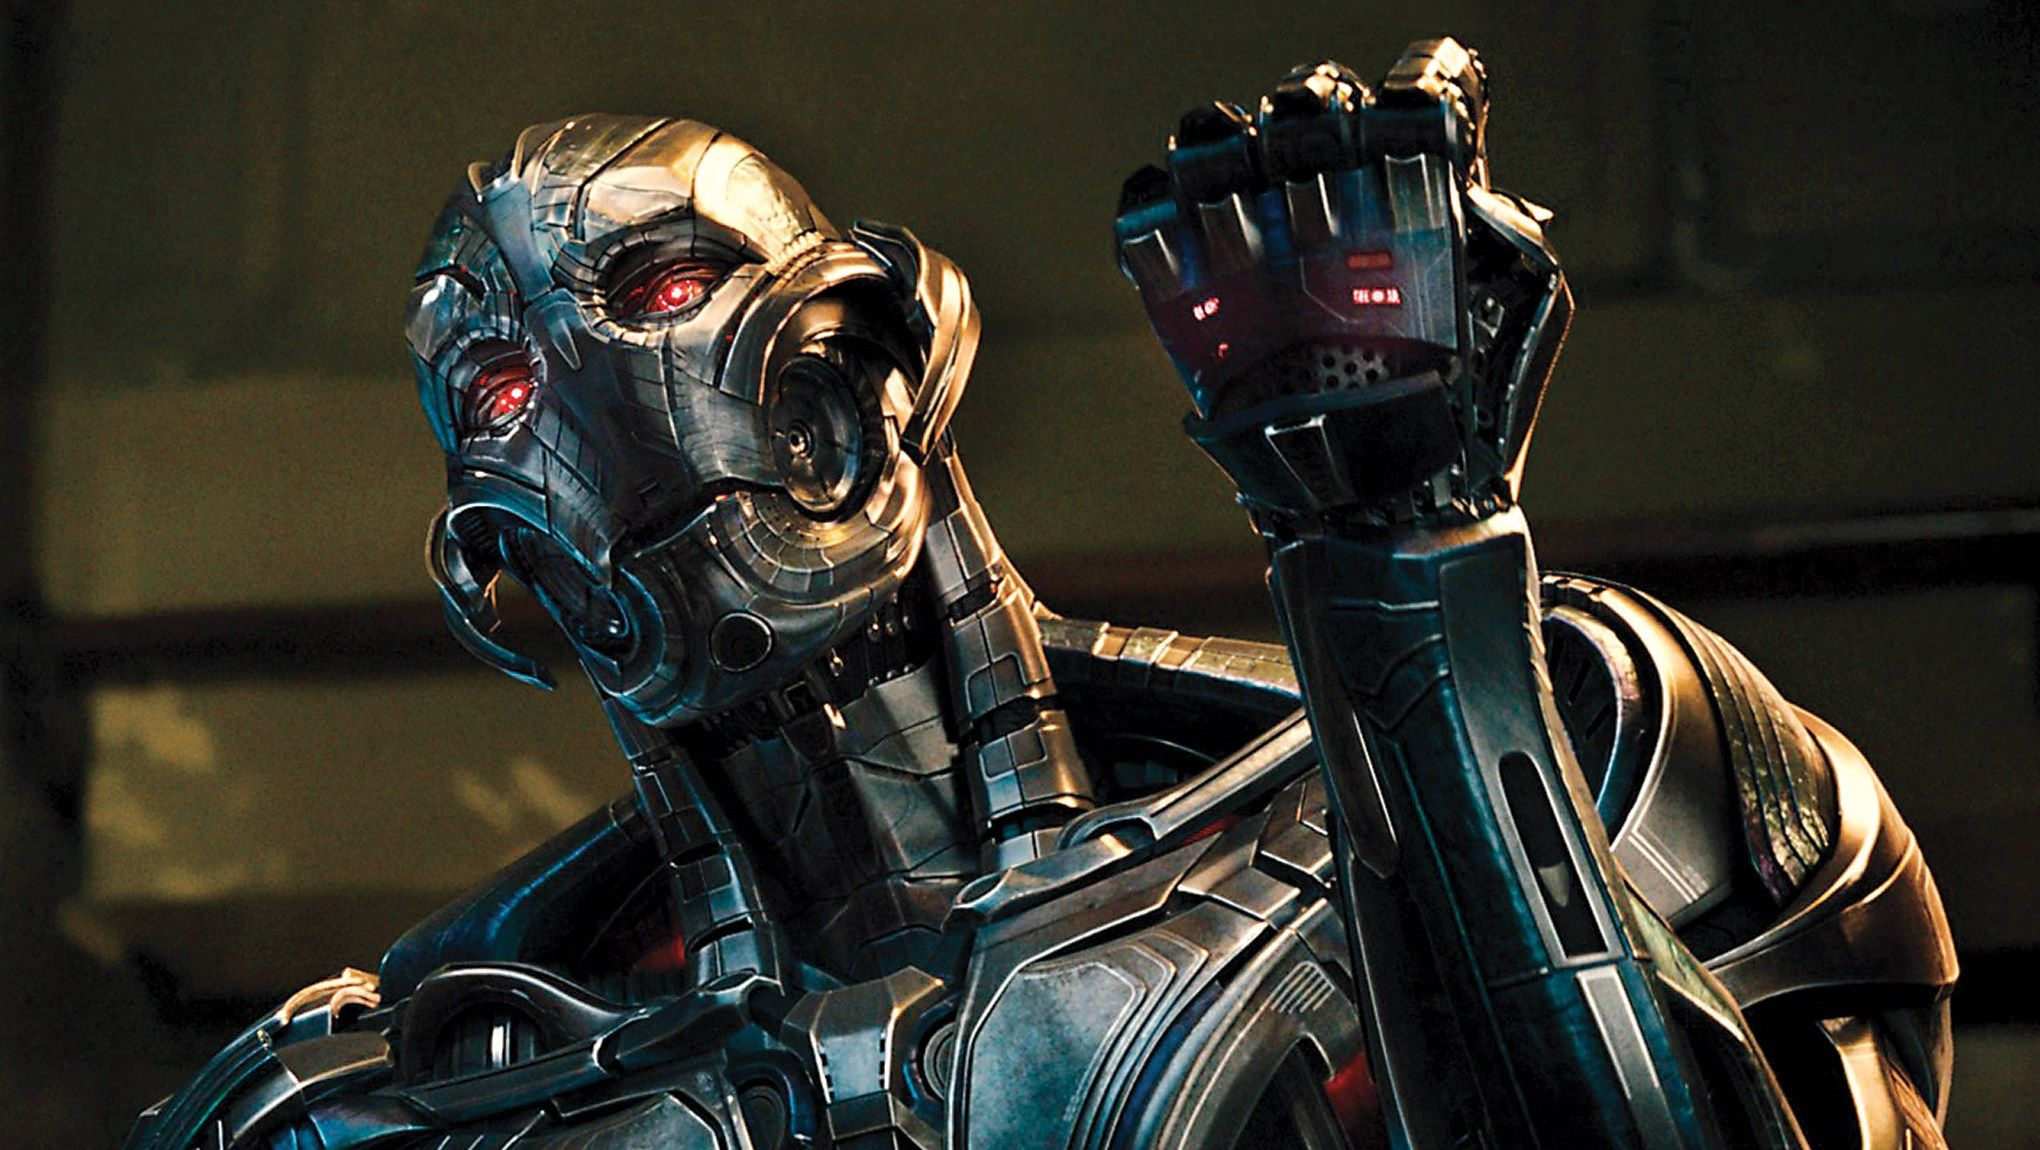 Ultron (voiced by James Spader) in Avengers: Age of Ultron (2015)